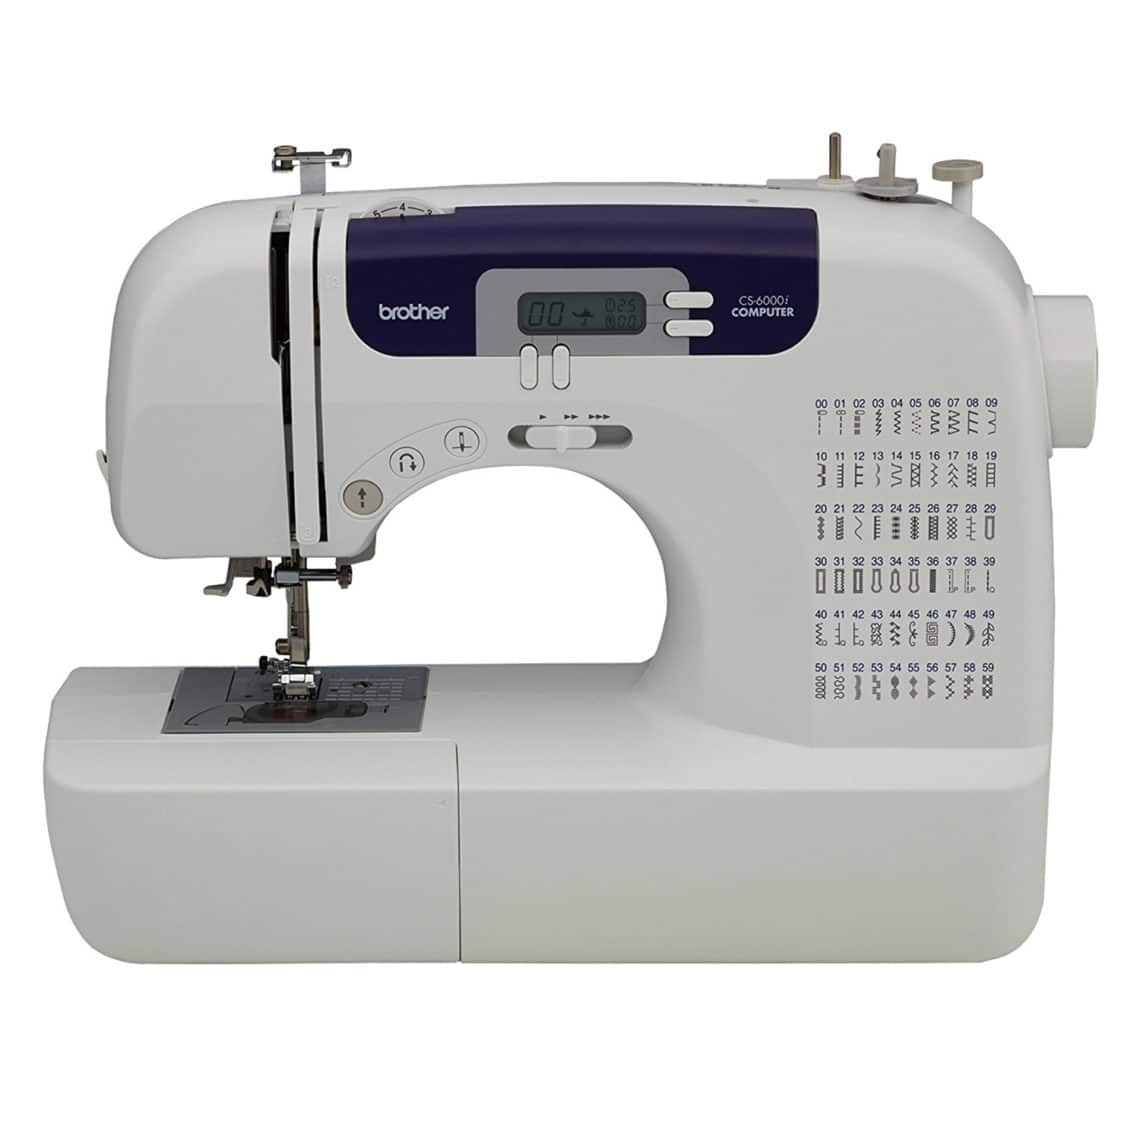 Brother CS6000i Feature-Rich Heavy Duty Sewing Machine